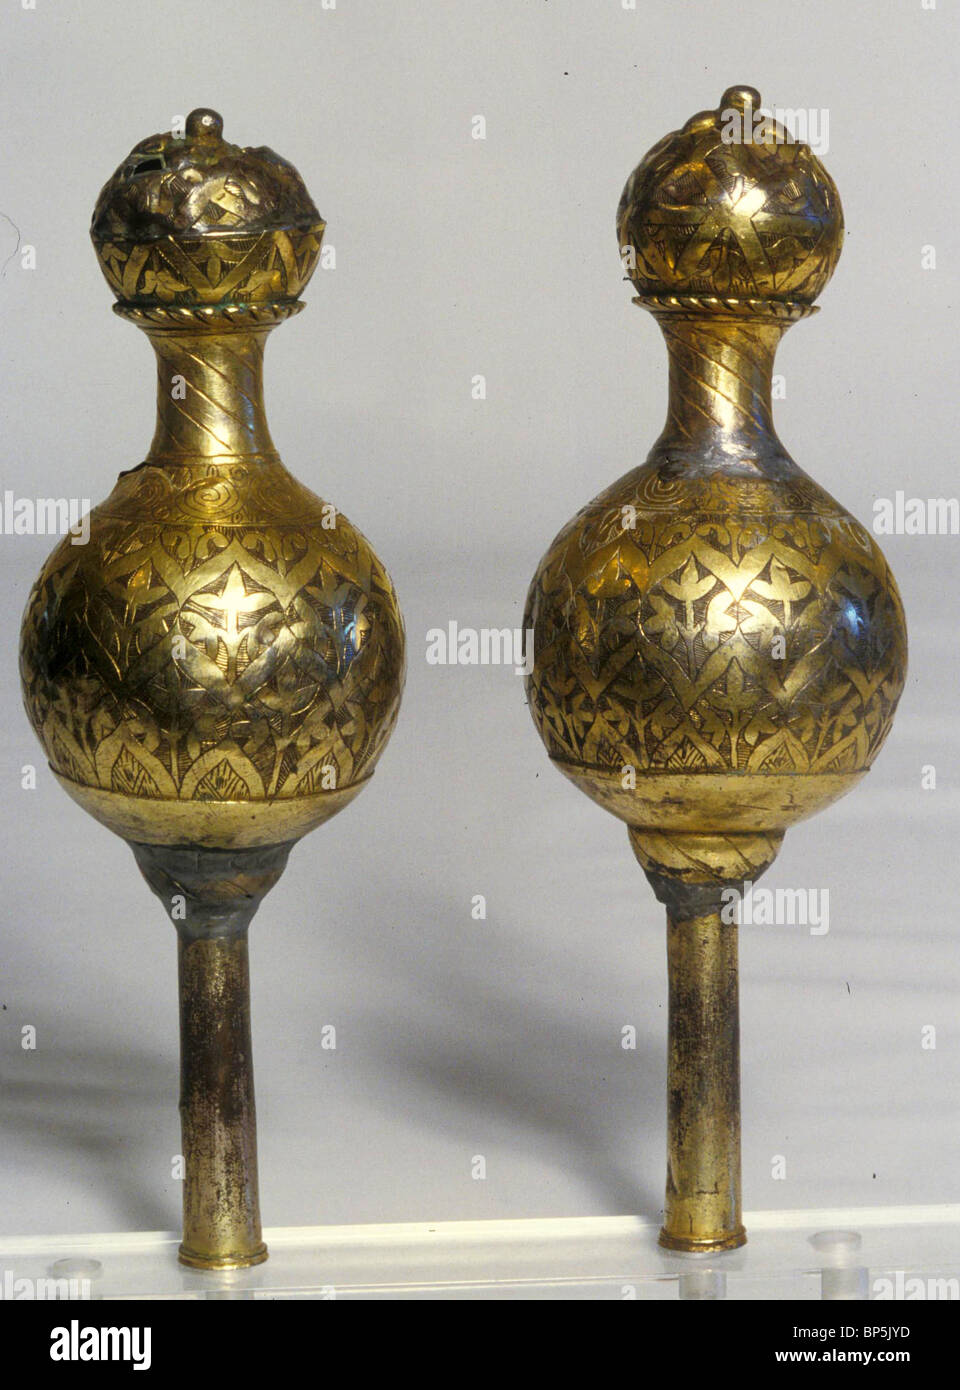 SAMARITAN ANCIENT GOLD COATED TORAH FINIALS - RIMONIM. THE RIMONIM ARE PUT ON THE CASE CONTAINING THE TORAH FOR Stock Photo